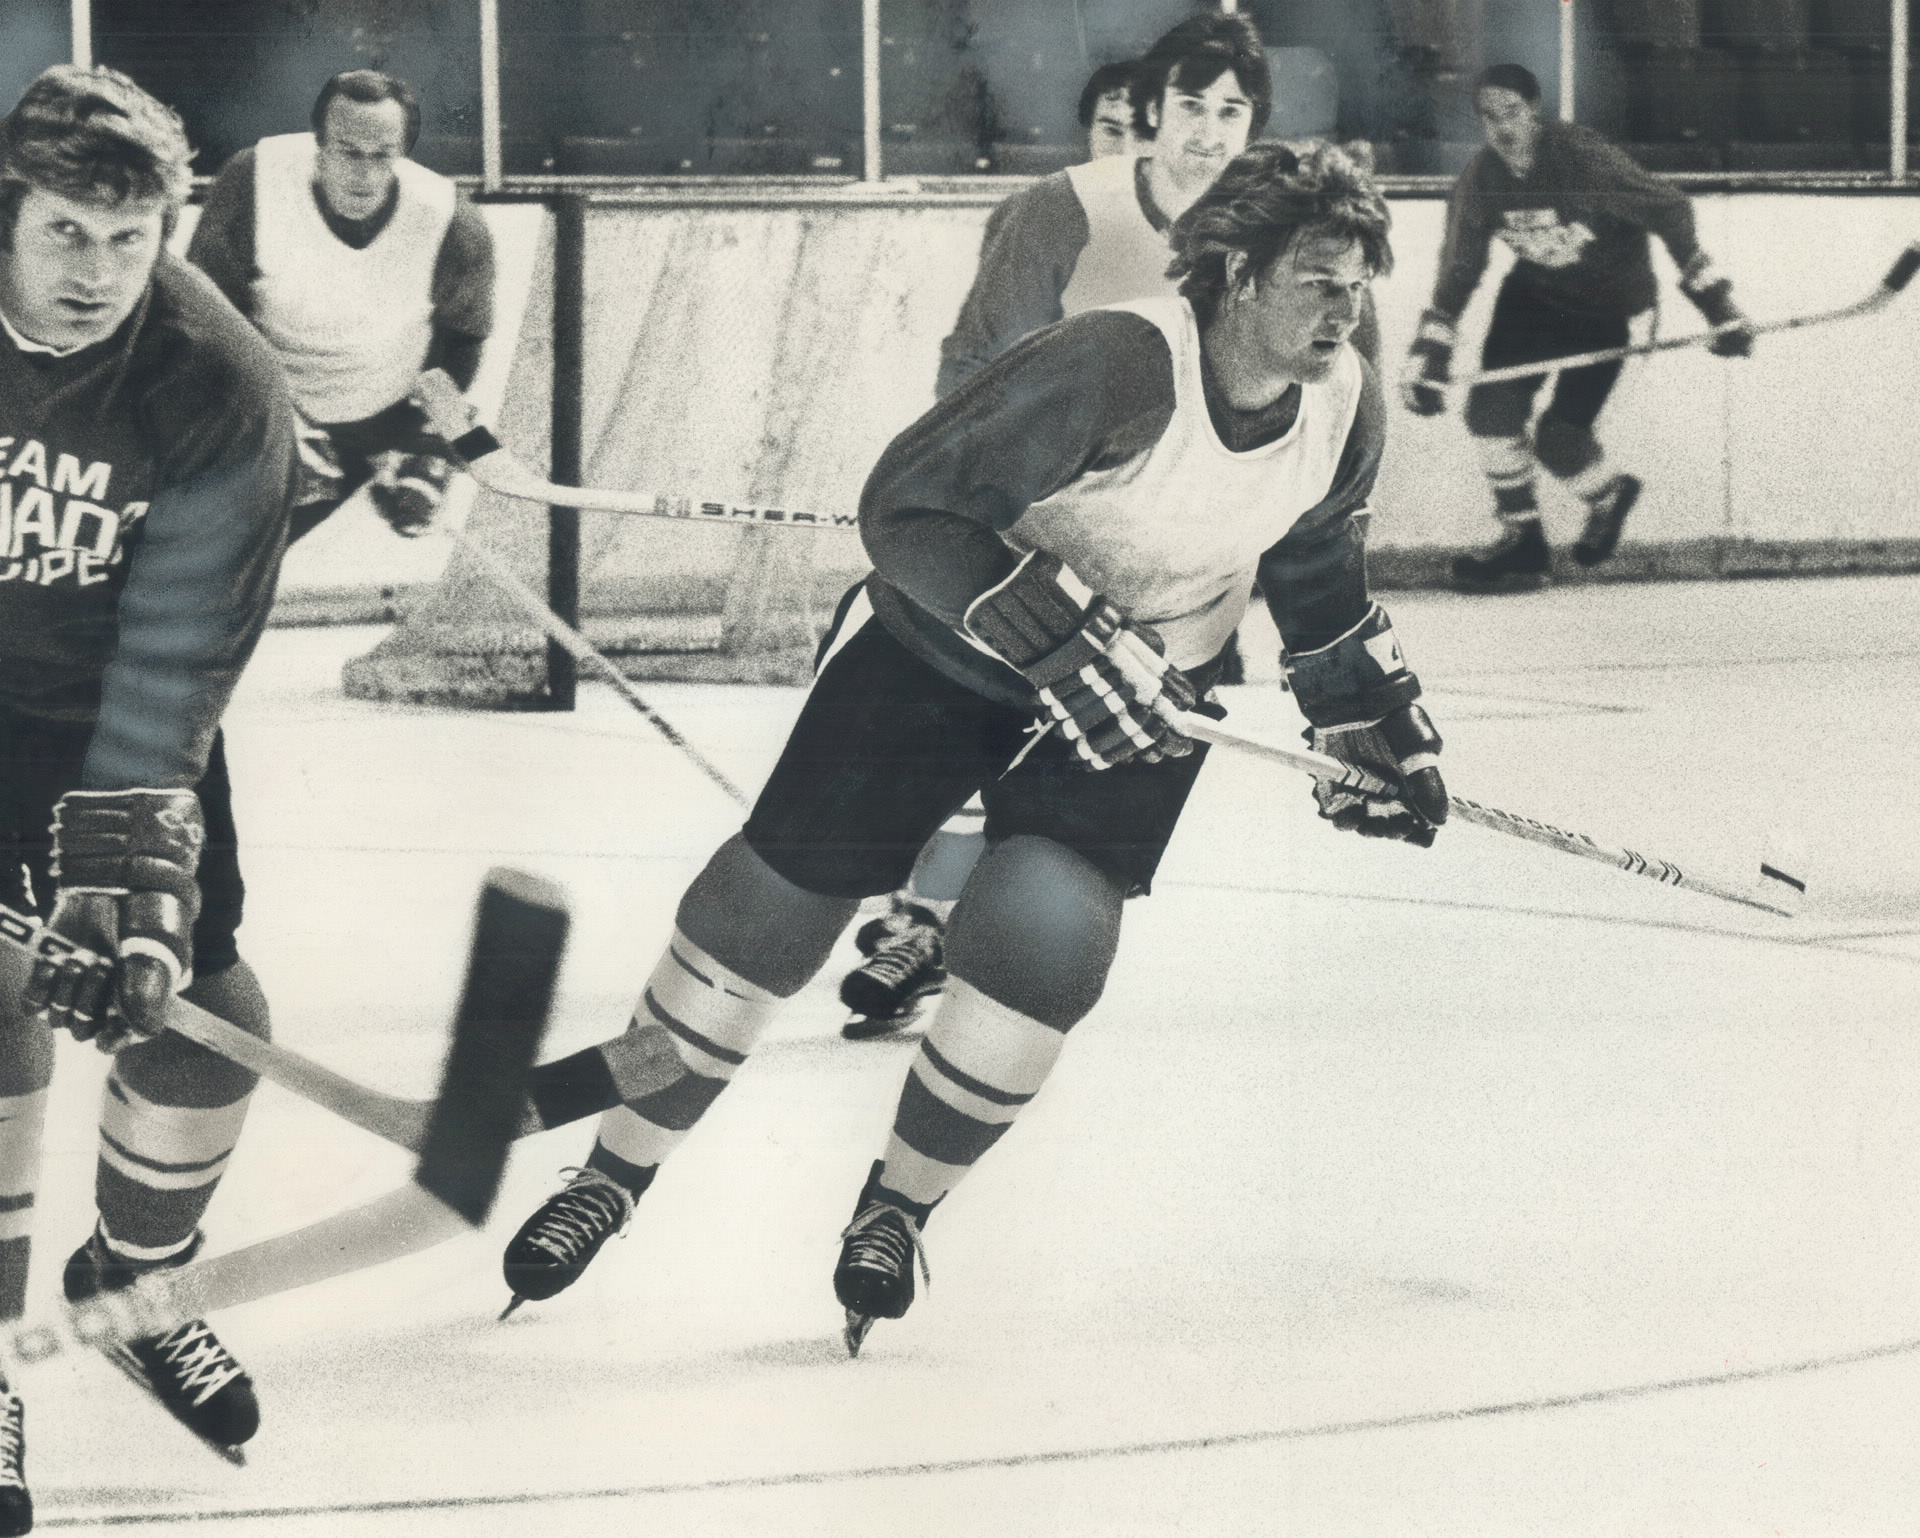 94c0dcdfcd1 BOBBY ORR TIES PAT STAPLETON'S NHL RECORD FOR ASSISTS IN A GAME